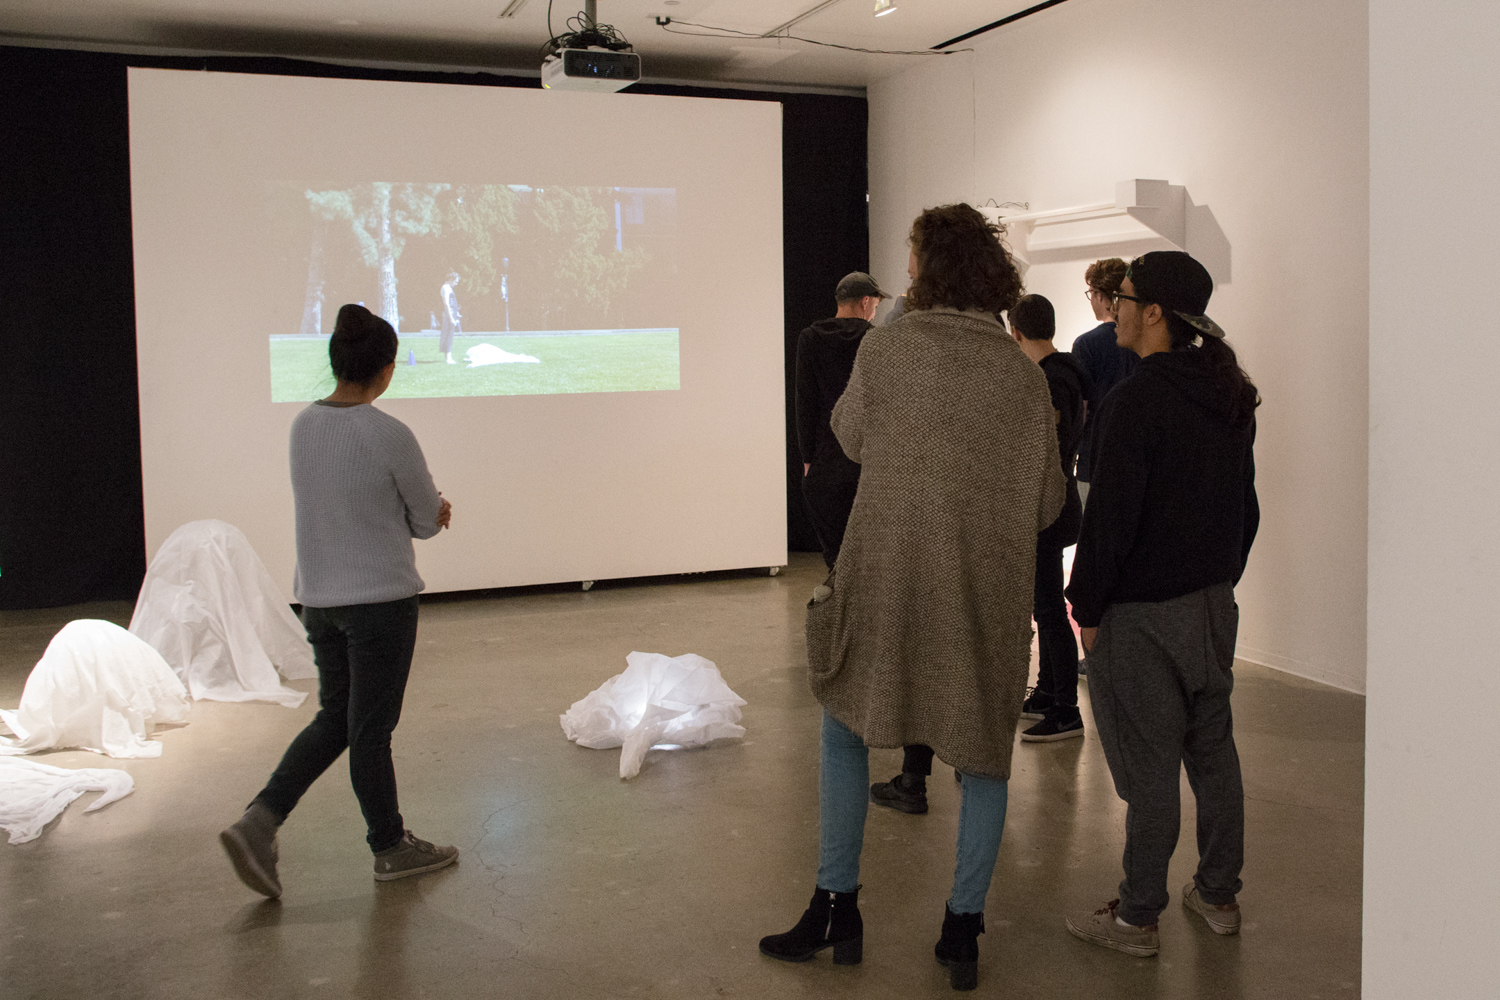 Video work of a person standing in a garden at Sam Congdon's solo show.